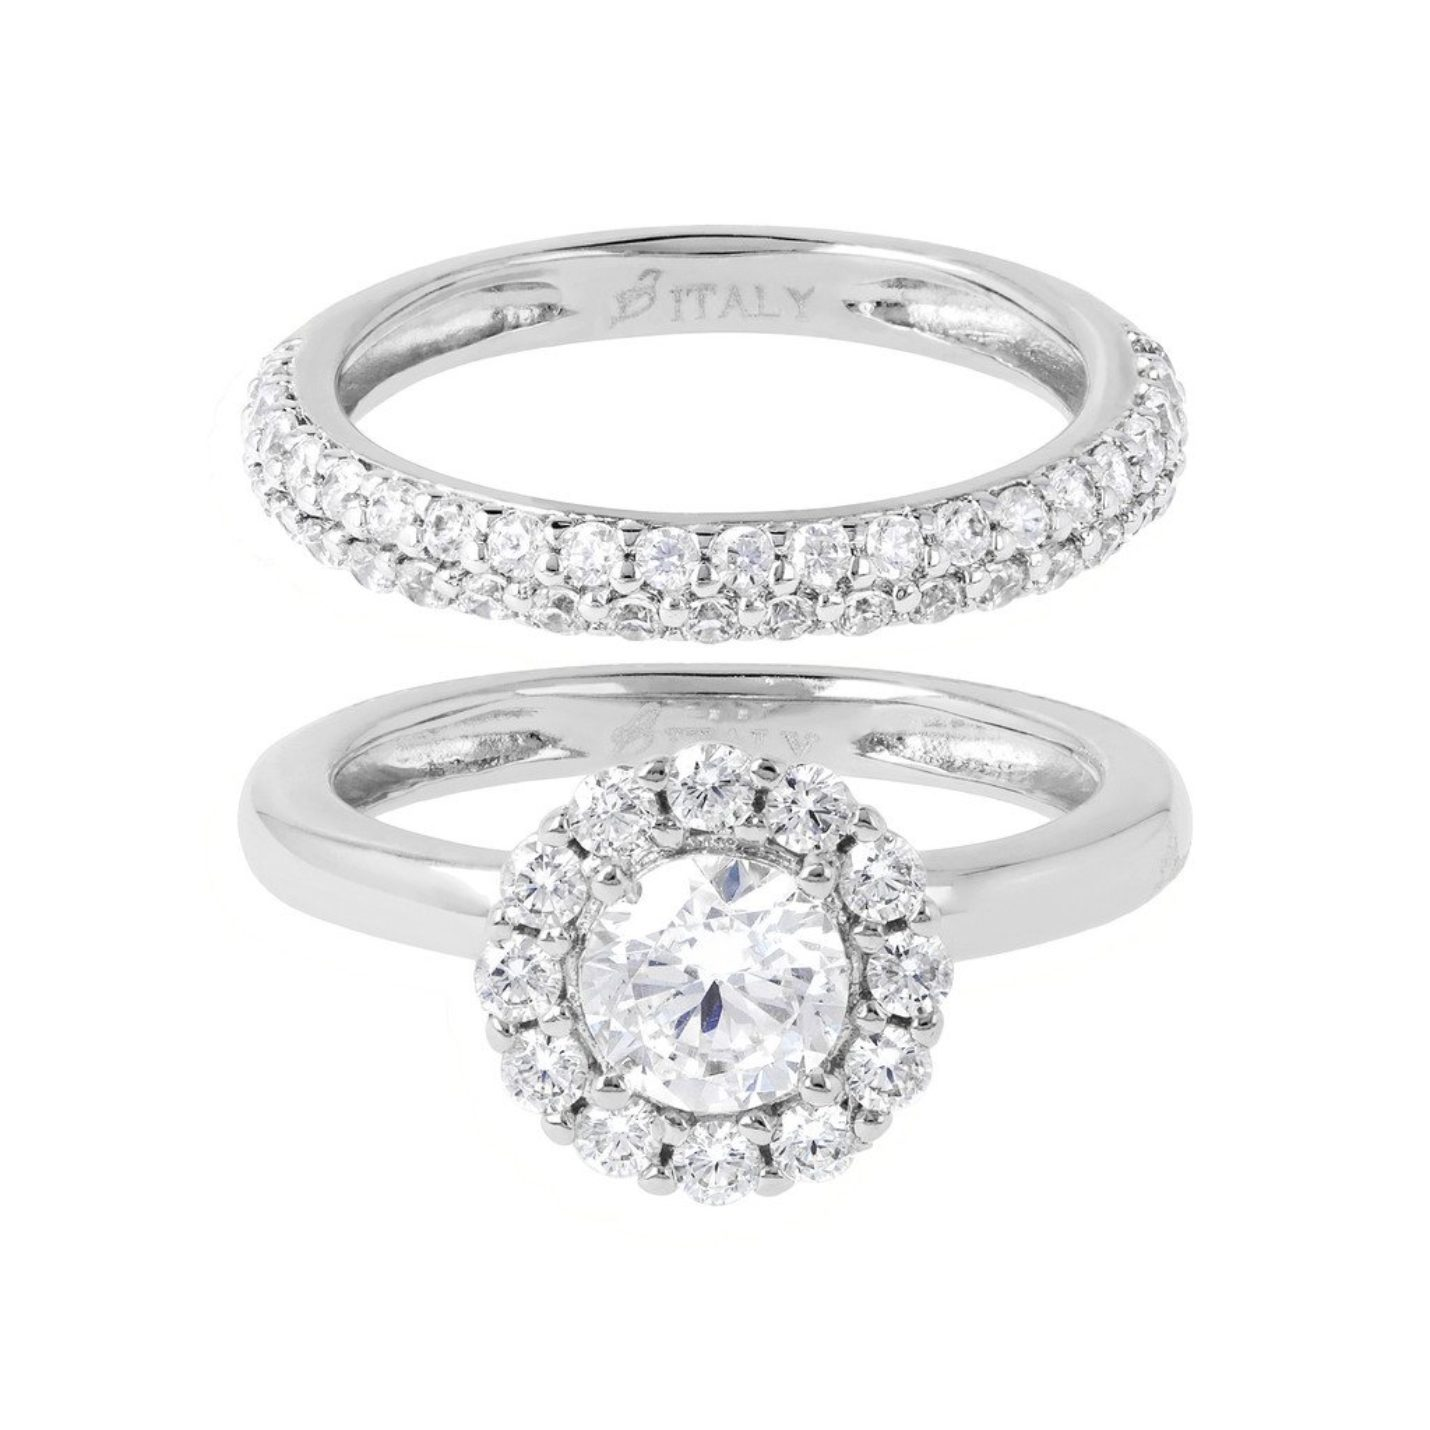 Bronzallure White Gold & CZ Ring Set